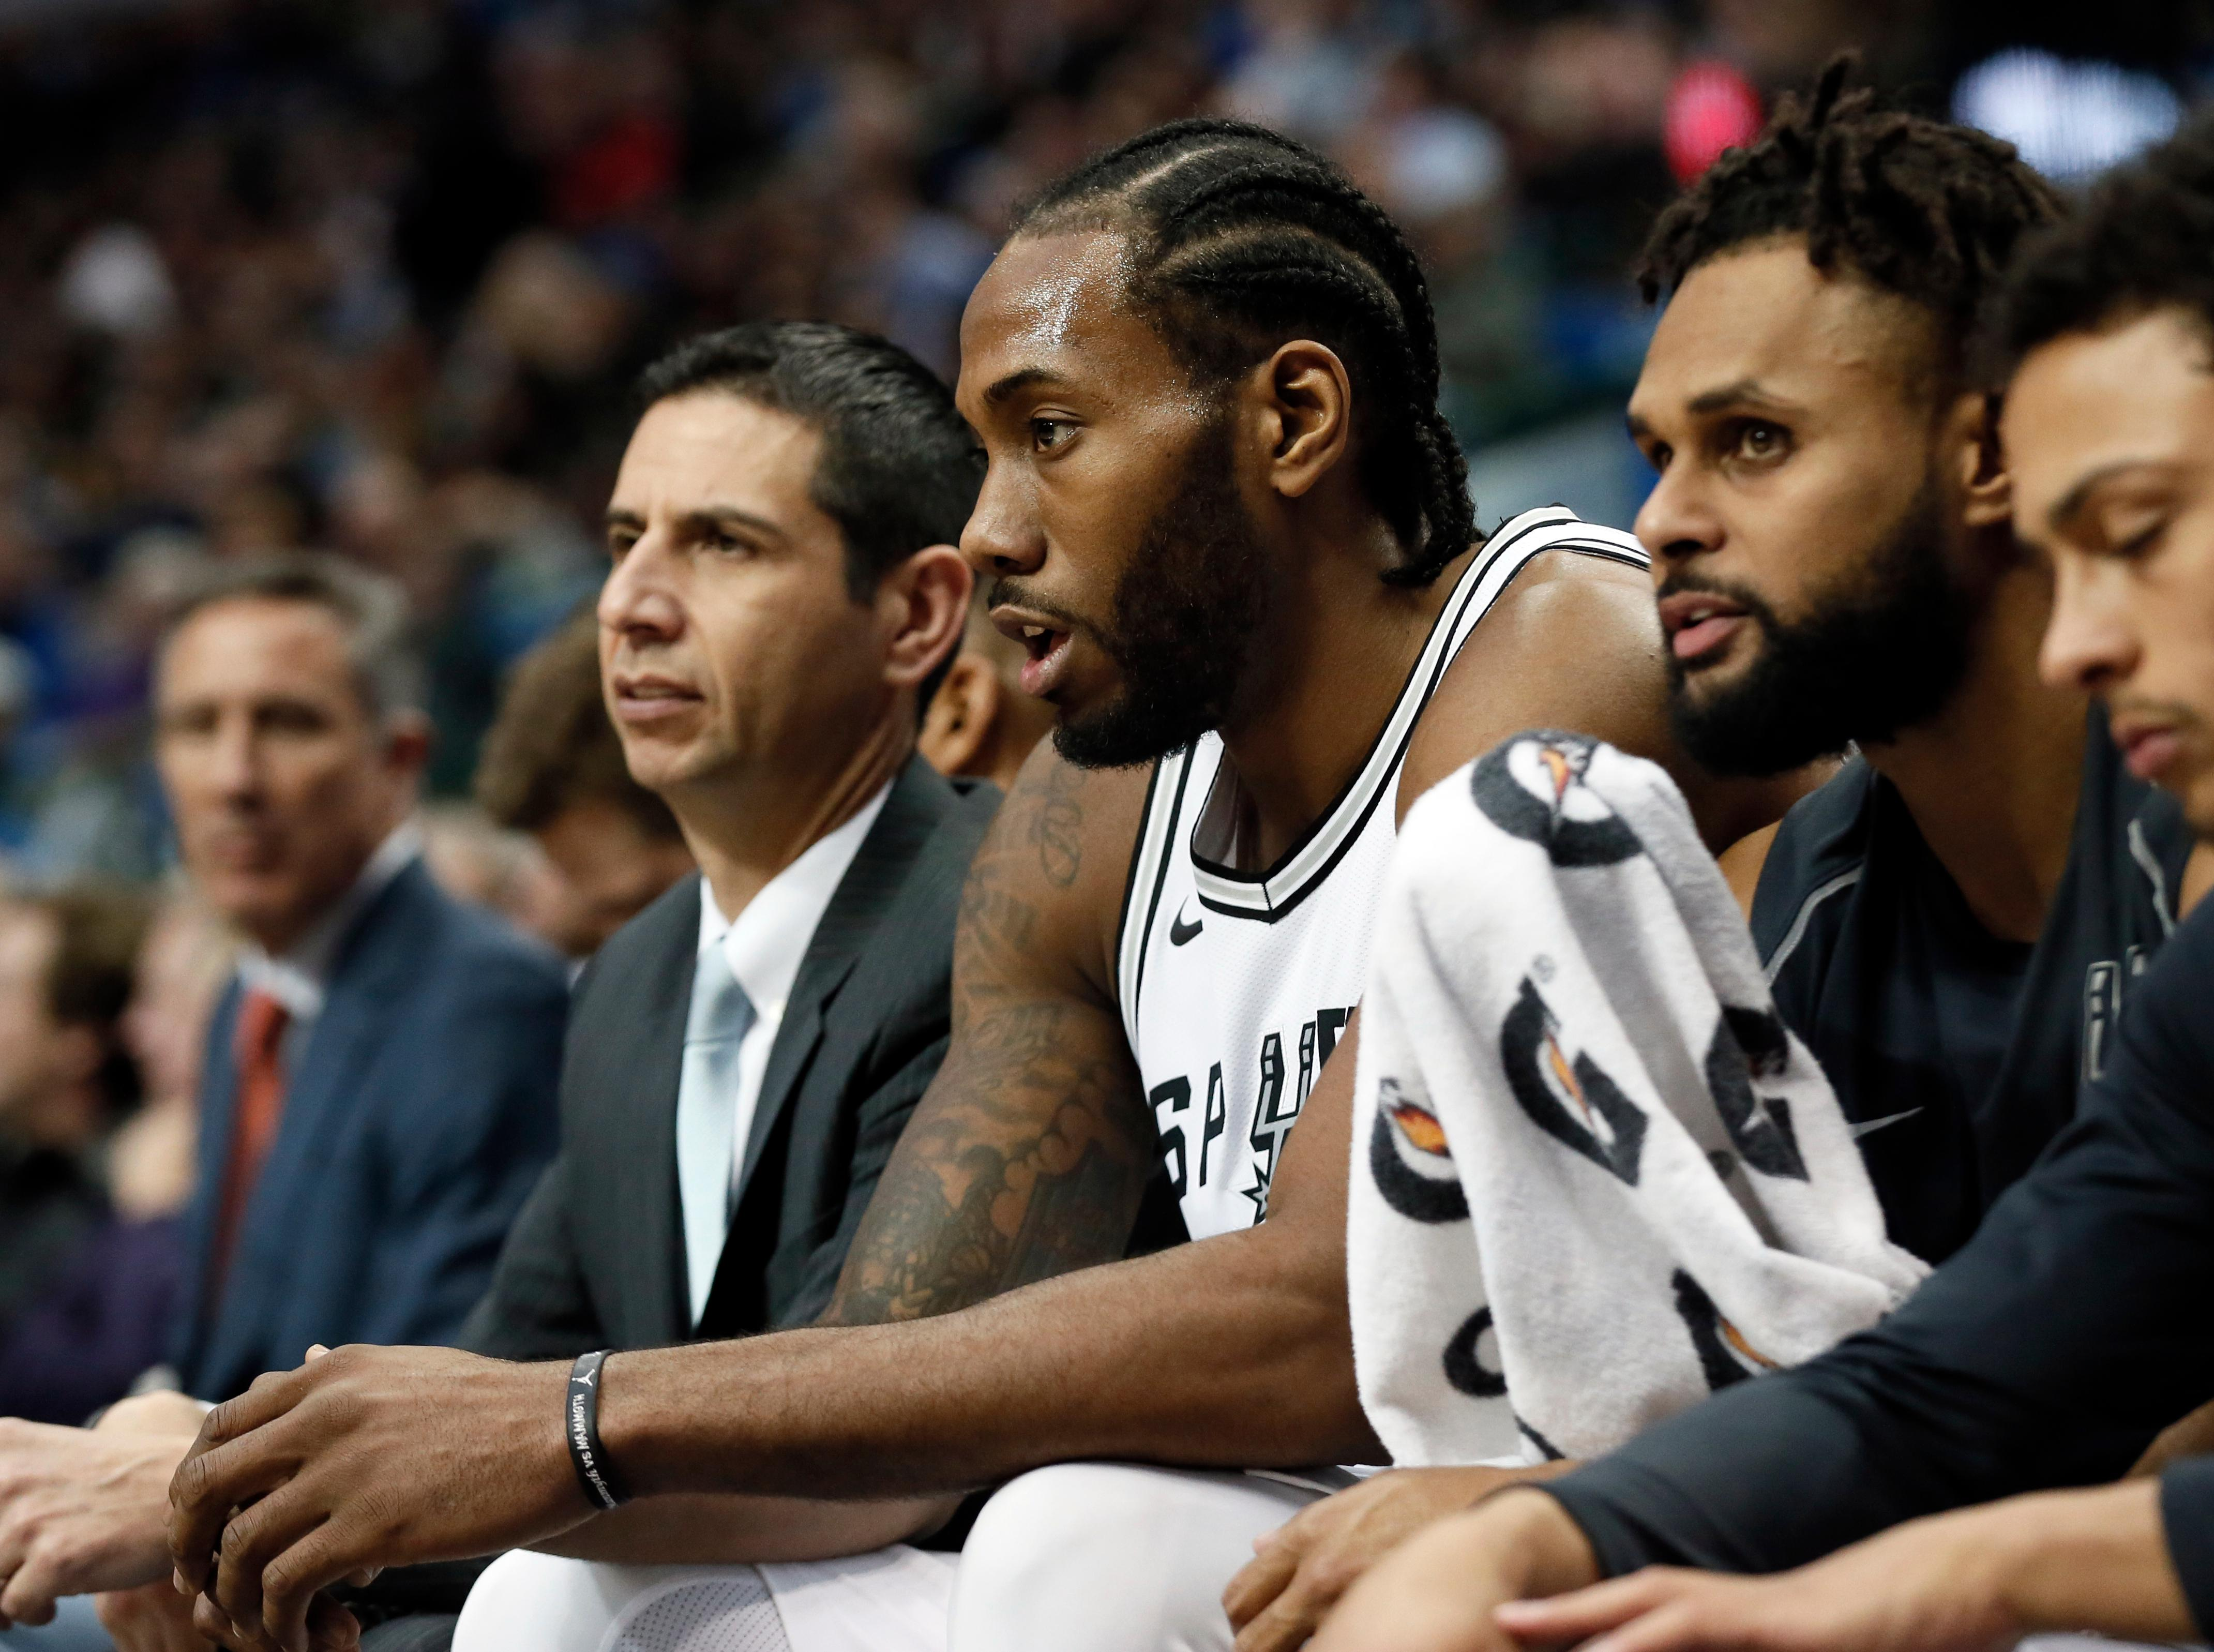 San Antonio Spurs' Kawhi Leonard, center, sits on the bench after playing in the first half of an NBA basketball game against the Dallas Mavericks on Tuesday, Dec. 12, 2017, in Dallas. (AP Photo/Tony Gutierrez)